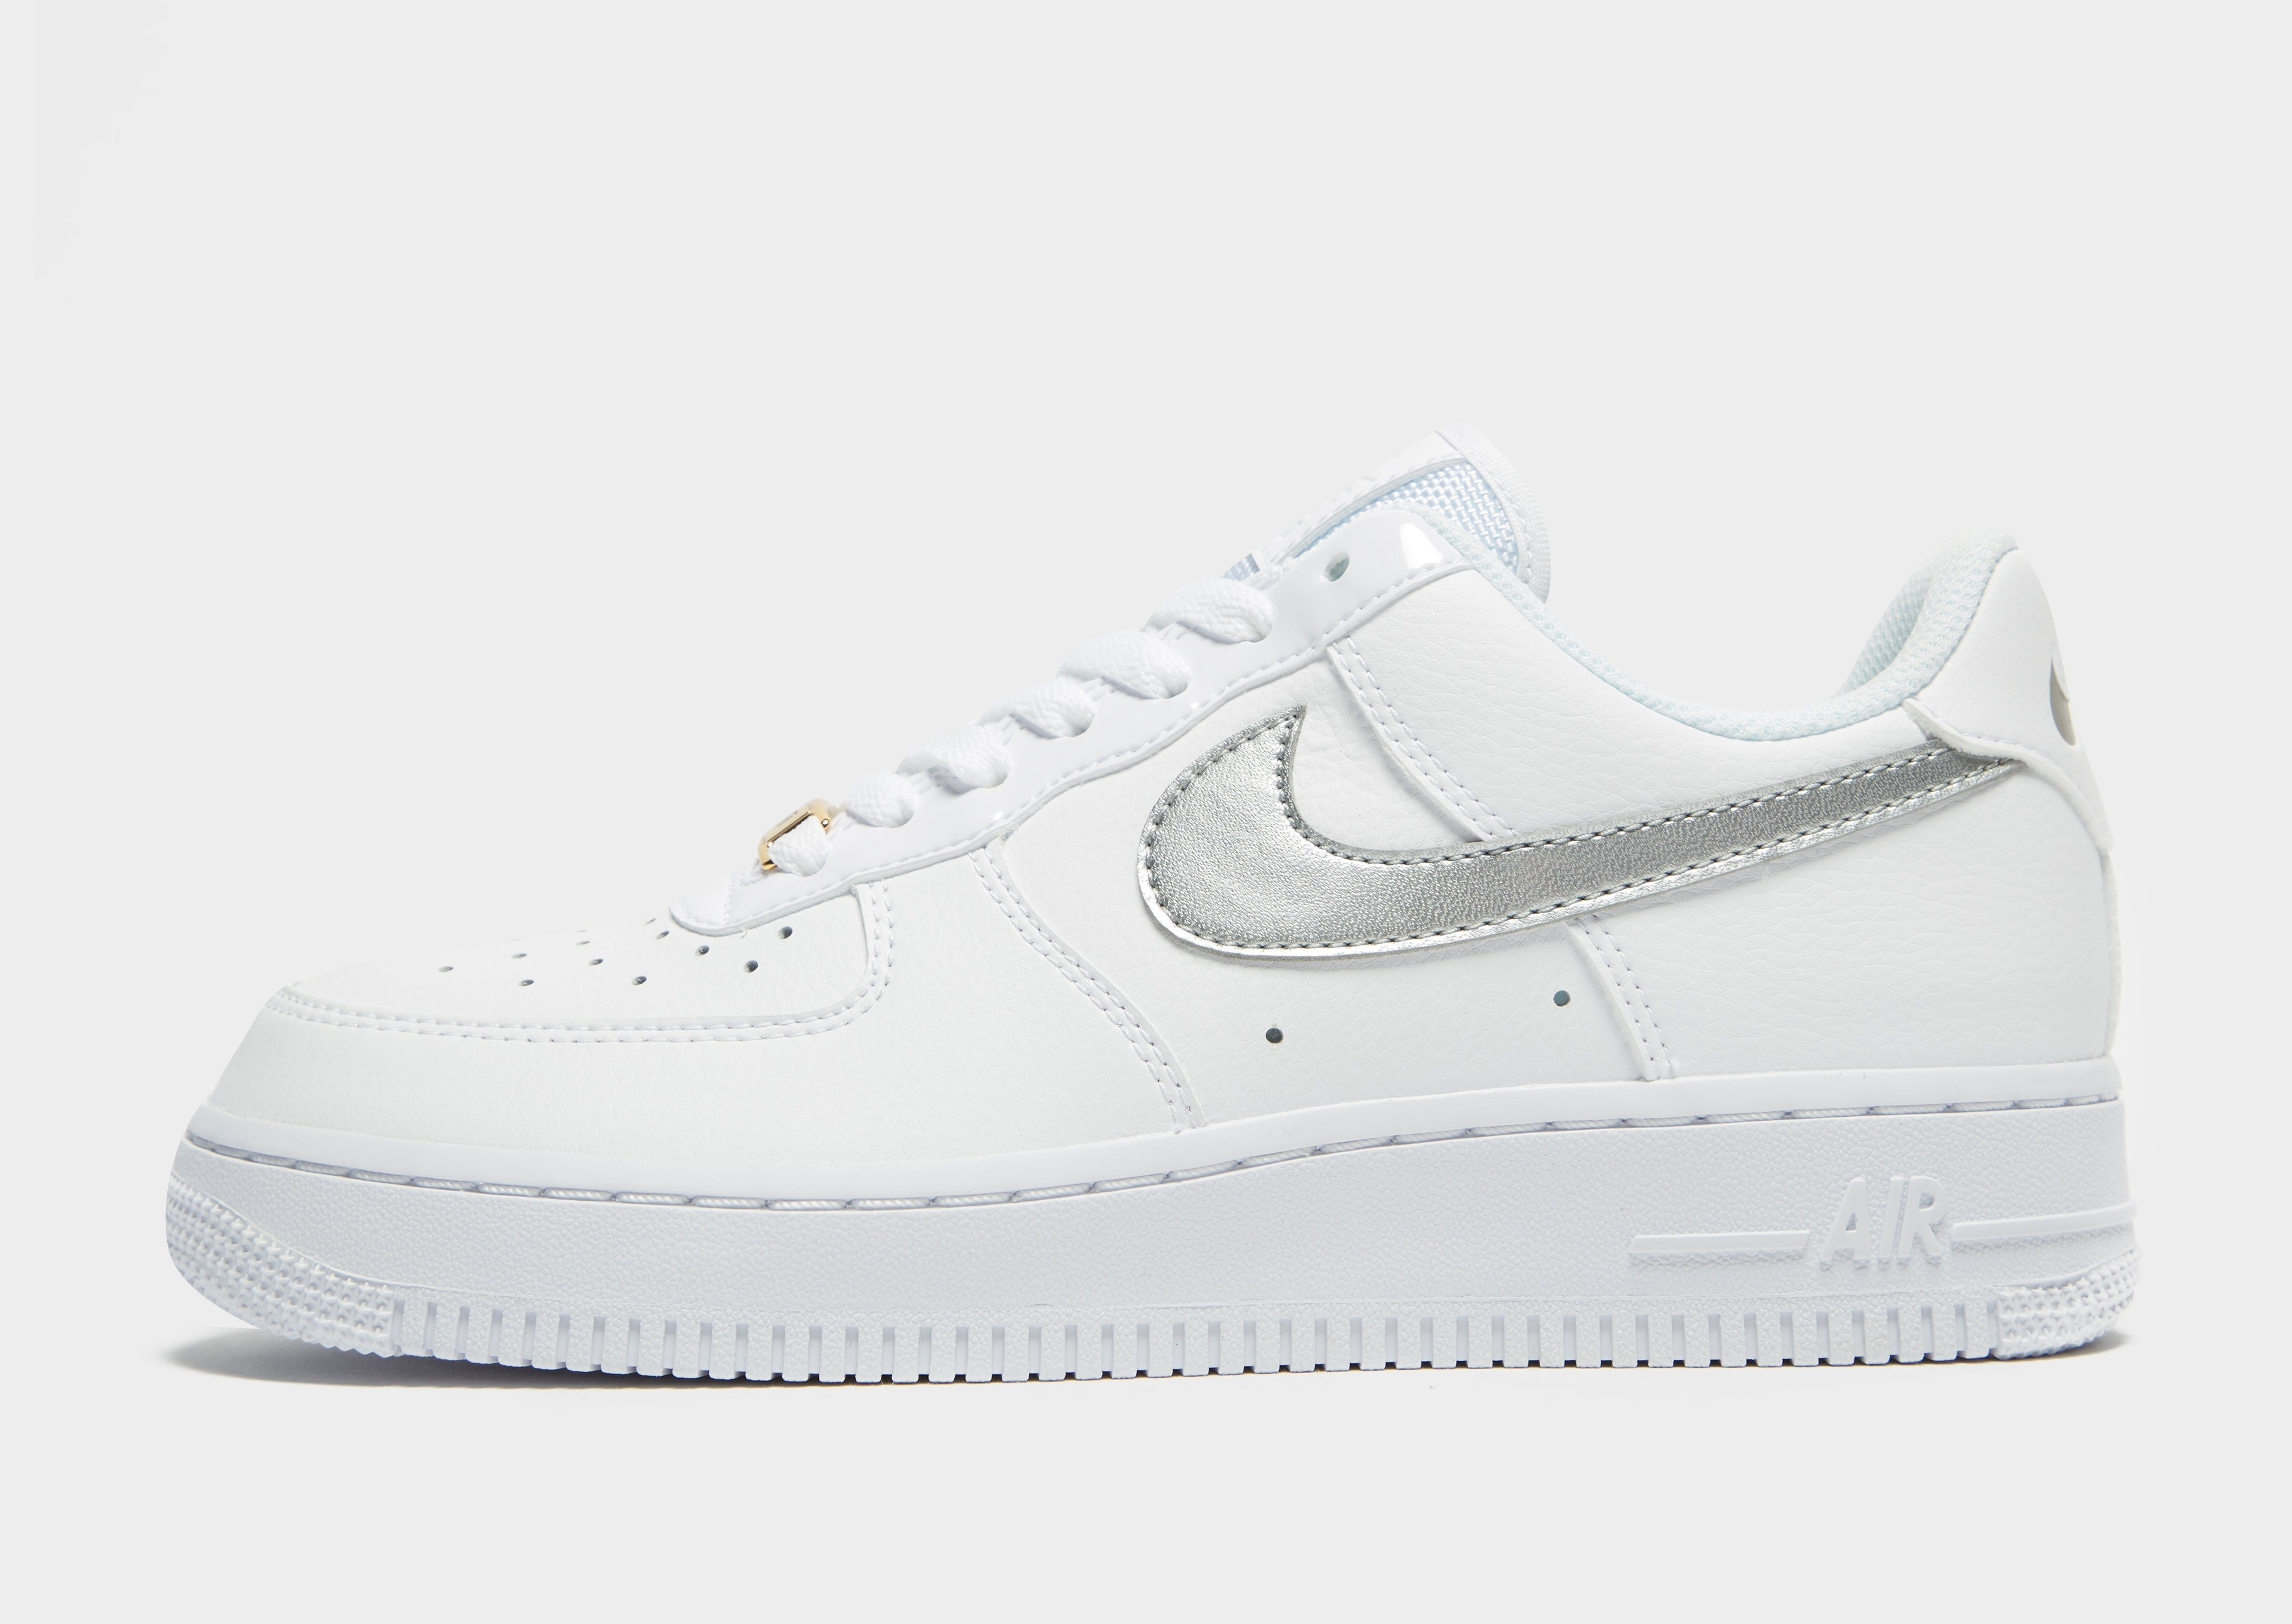 nike air force 1 07 lv8 metallic zilver shop bcc25 ce3da